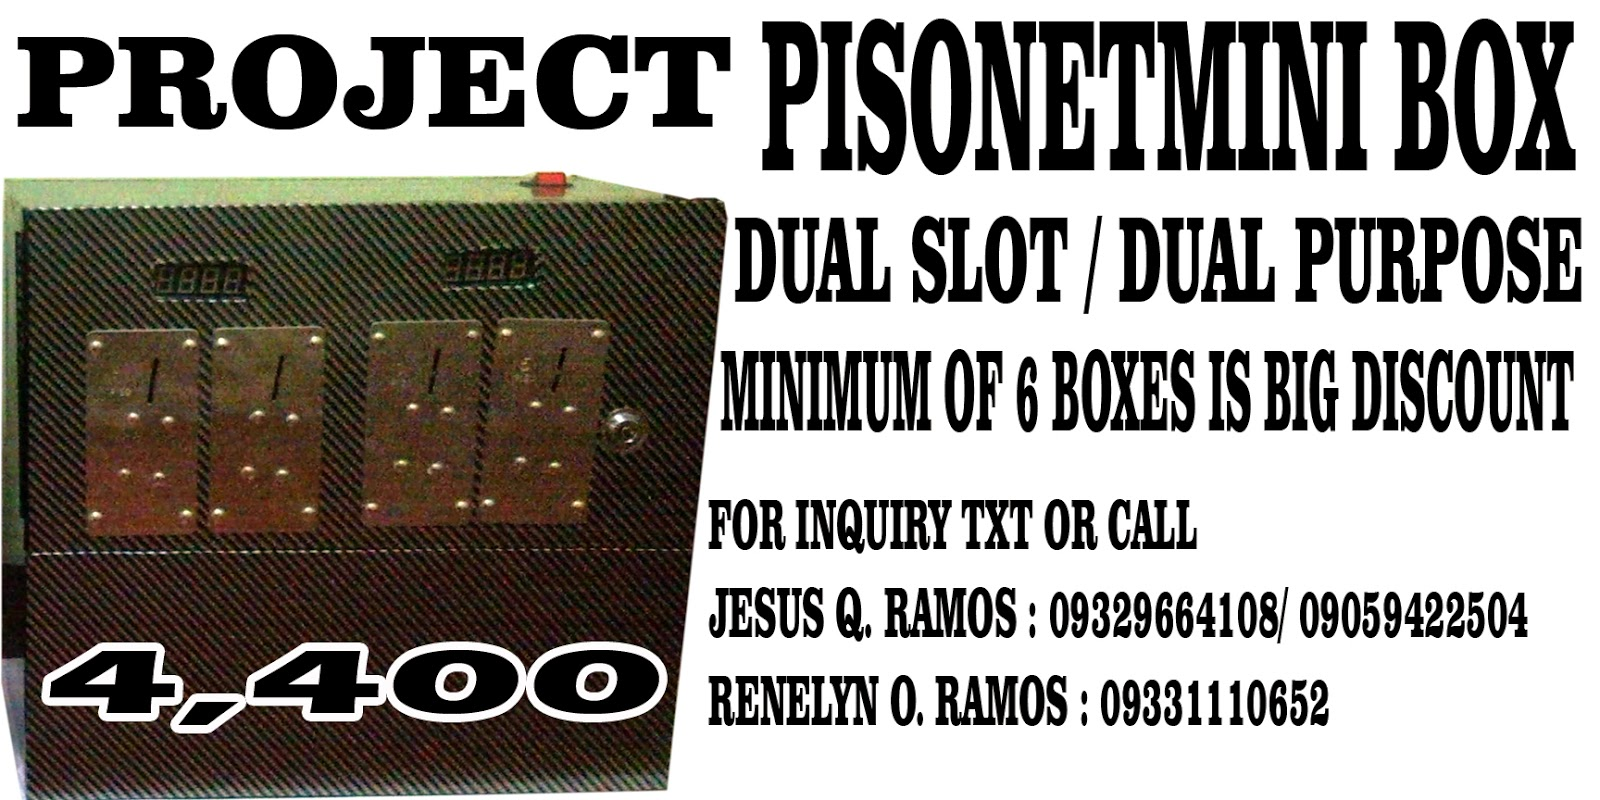 Fantastic Diagram Of Pisonet Coin Slot Units Join Query With Linq Wiring Digital Resources Indicompassionincorg